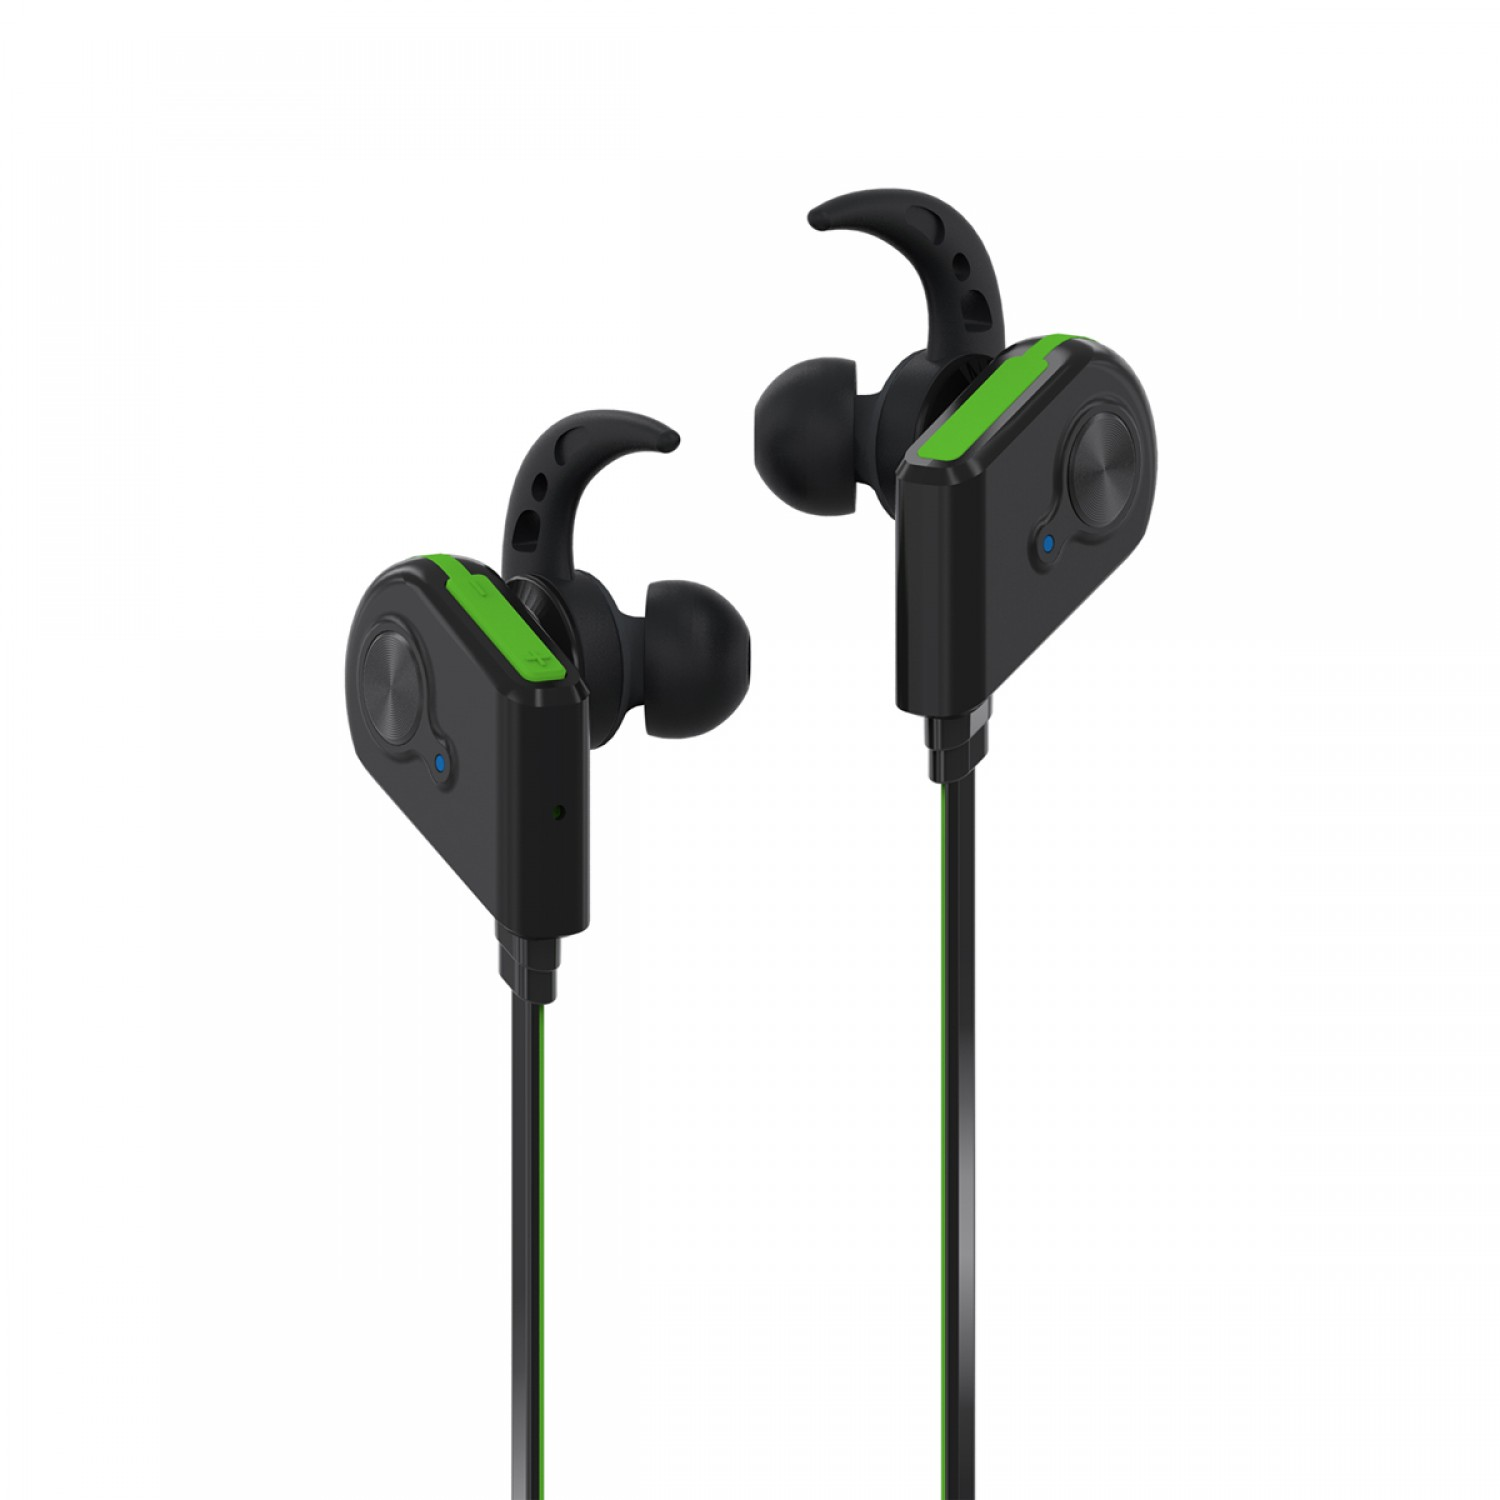 Promate Bluetooth Earphones, Wireless Bluetooth 4.1 Magnetic Earphones with HD Sound Quality Sweatproof, Secure-Fit, Built-In Mic and Noise Isolating for iPhone, iPad, Samsung, Pc, Laptop, Fluid Green